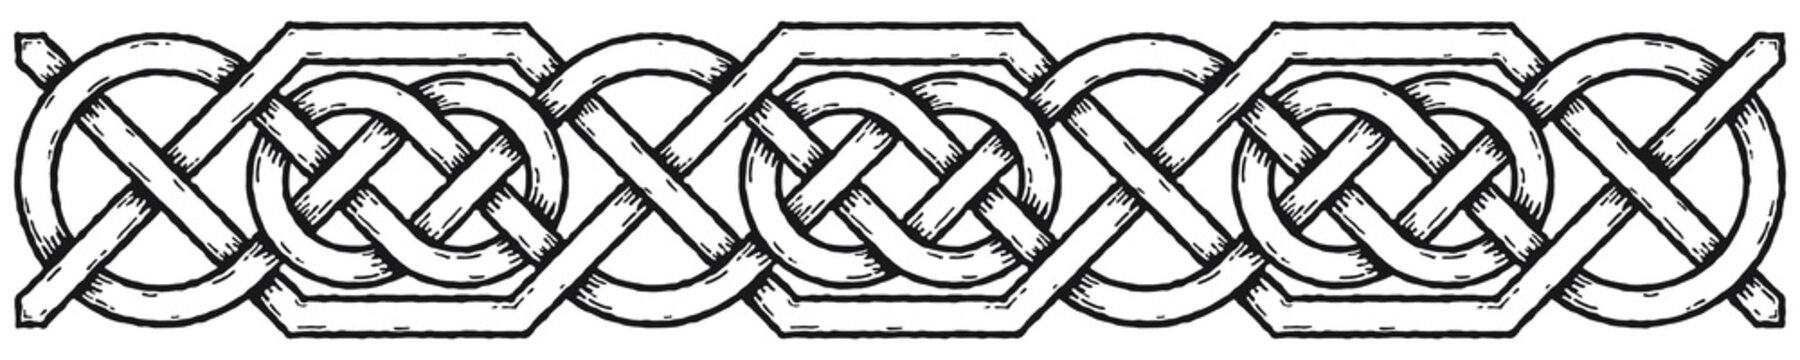 Celtic border with circles, with shadows. Linear border made with Celtic knots for use in designs for St. Patrick's Day.